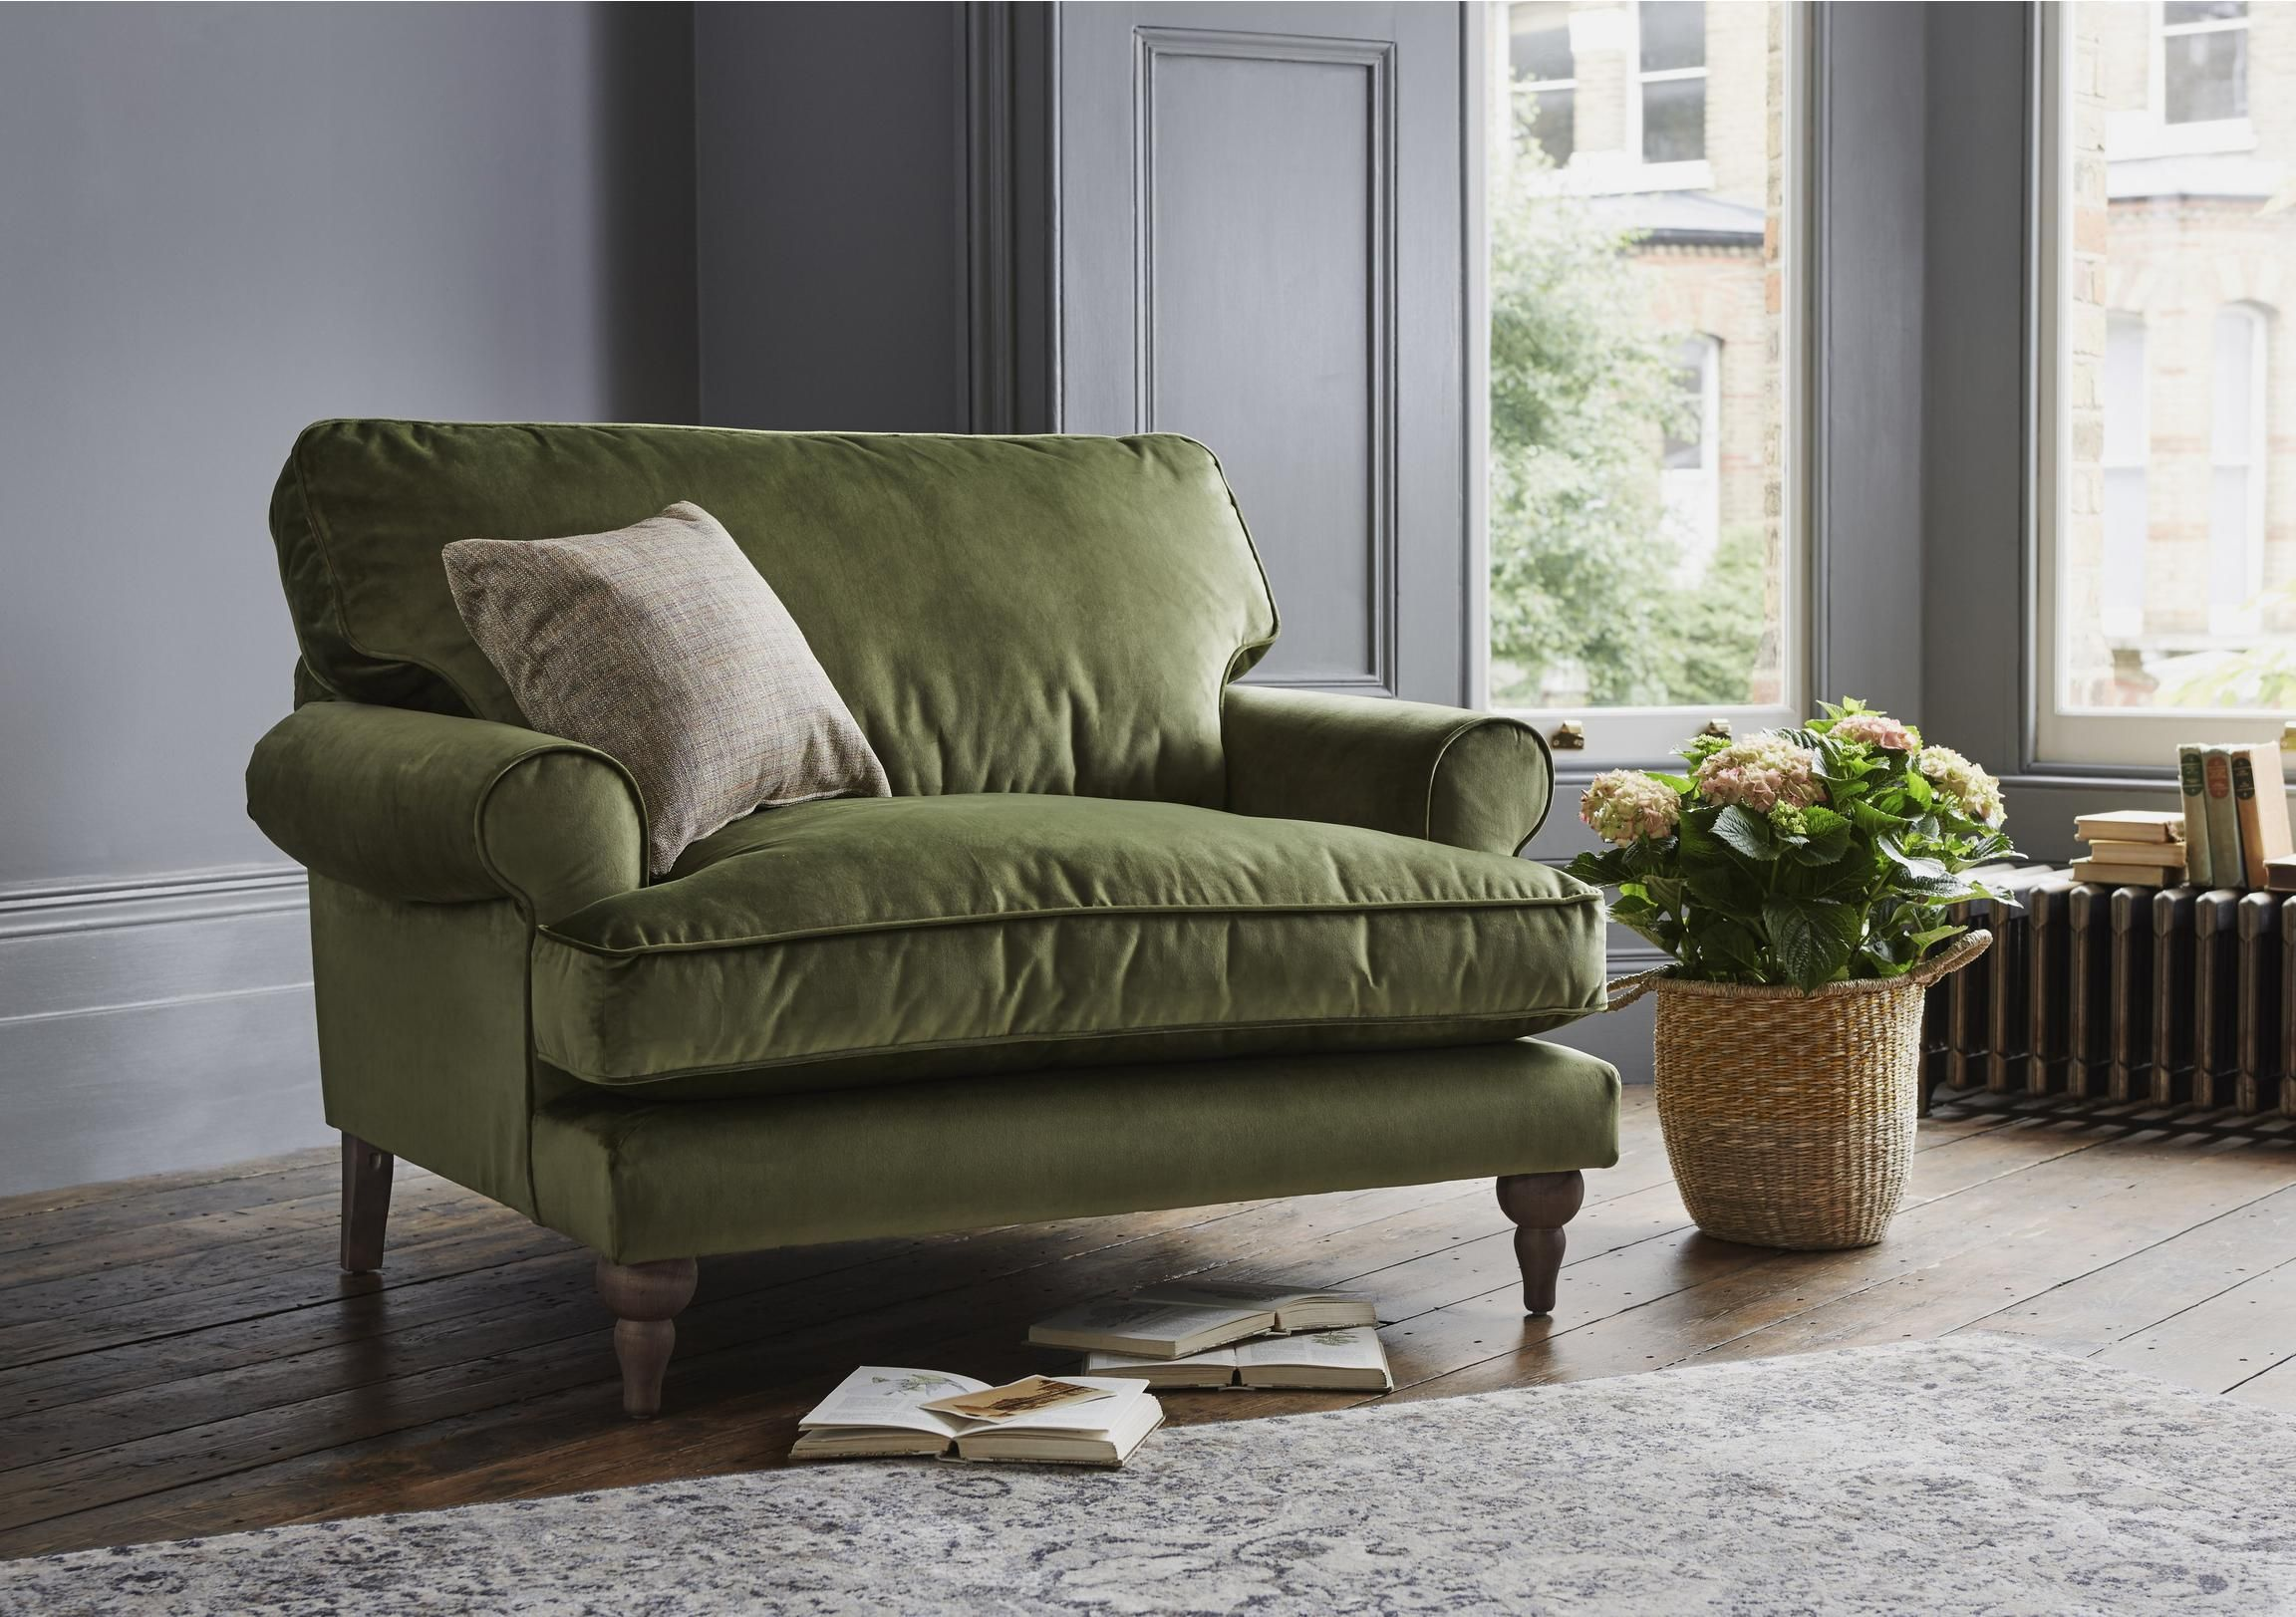 Millport fabric snuggler chair in house pinterest chair